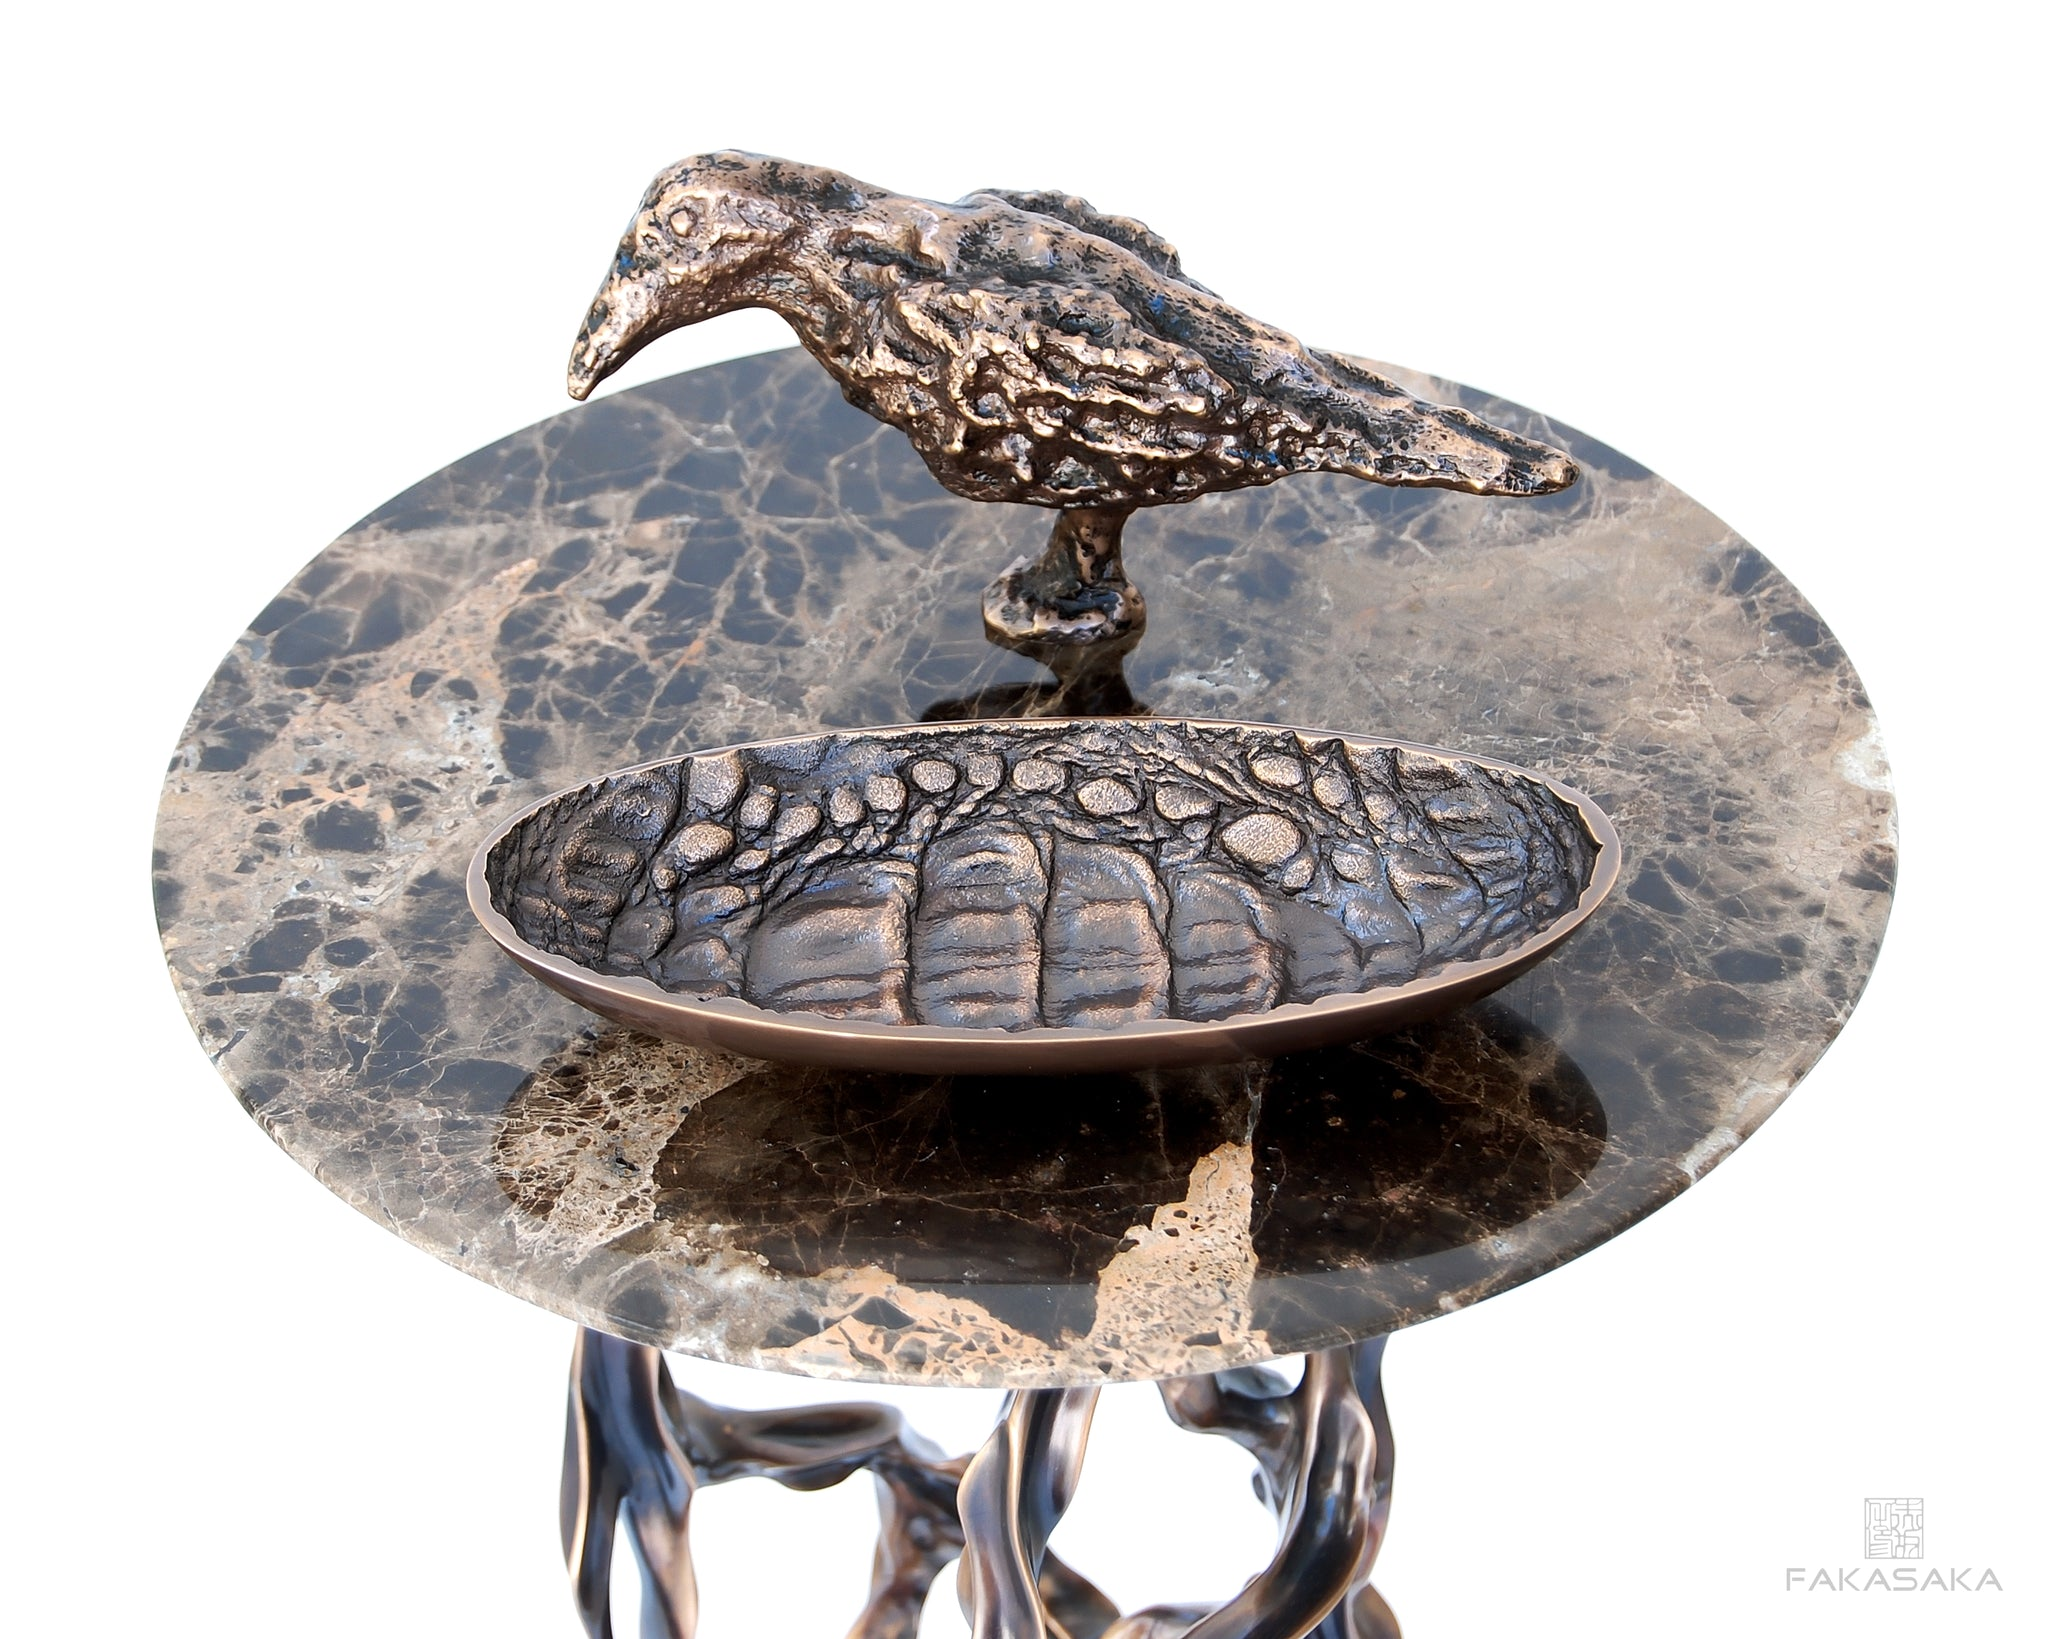 BLACKBIRD<br>SCULPTURE / PAPER WEIGHT<br>BOOKEND / DOORSTOP<br><br>POLISHED BRONZE<br>ONYX BASE